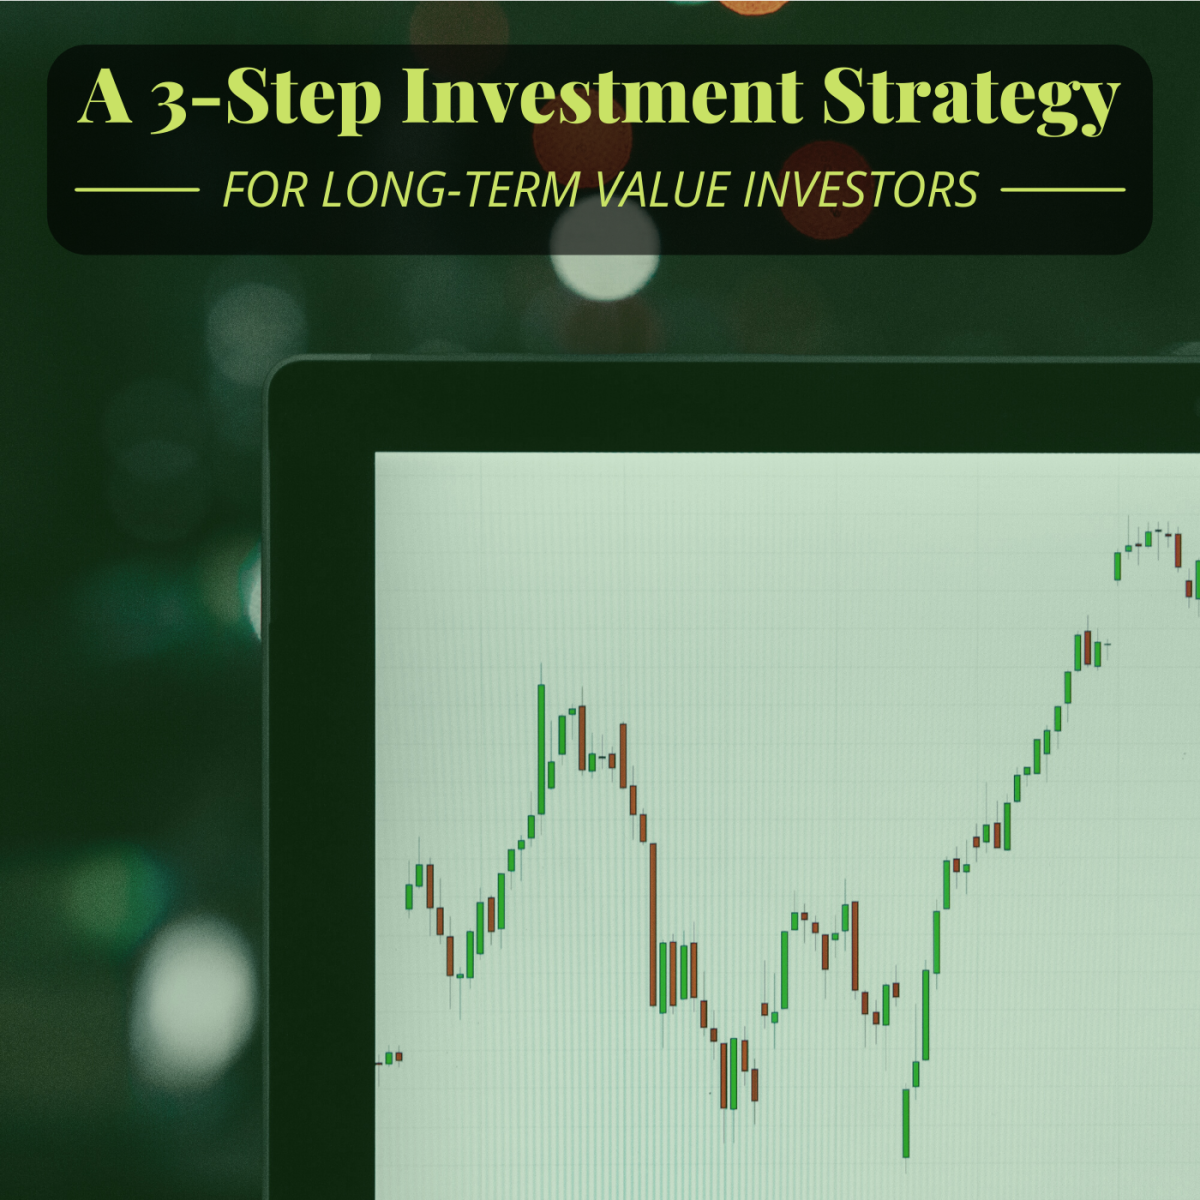 If you want to beat the market and get consistent returns over time, diversification across industries is key.